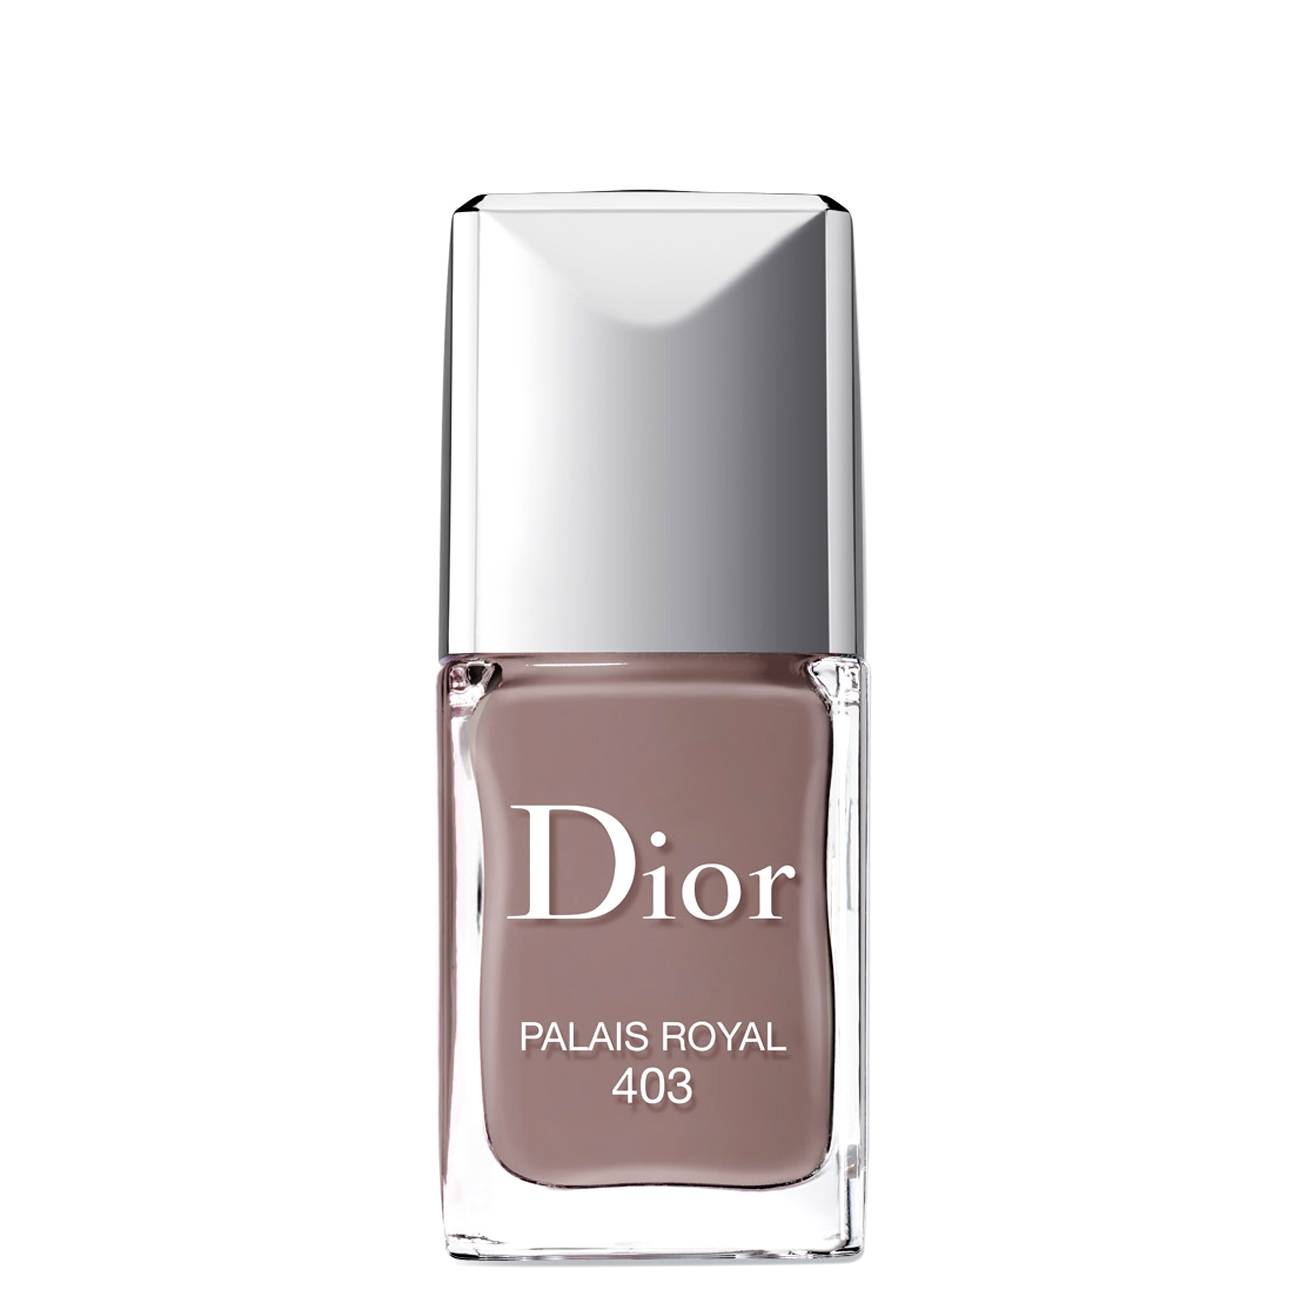 Vernis 403 10 Ml Dior imagine 2021 bestvalue.eu